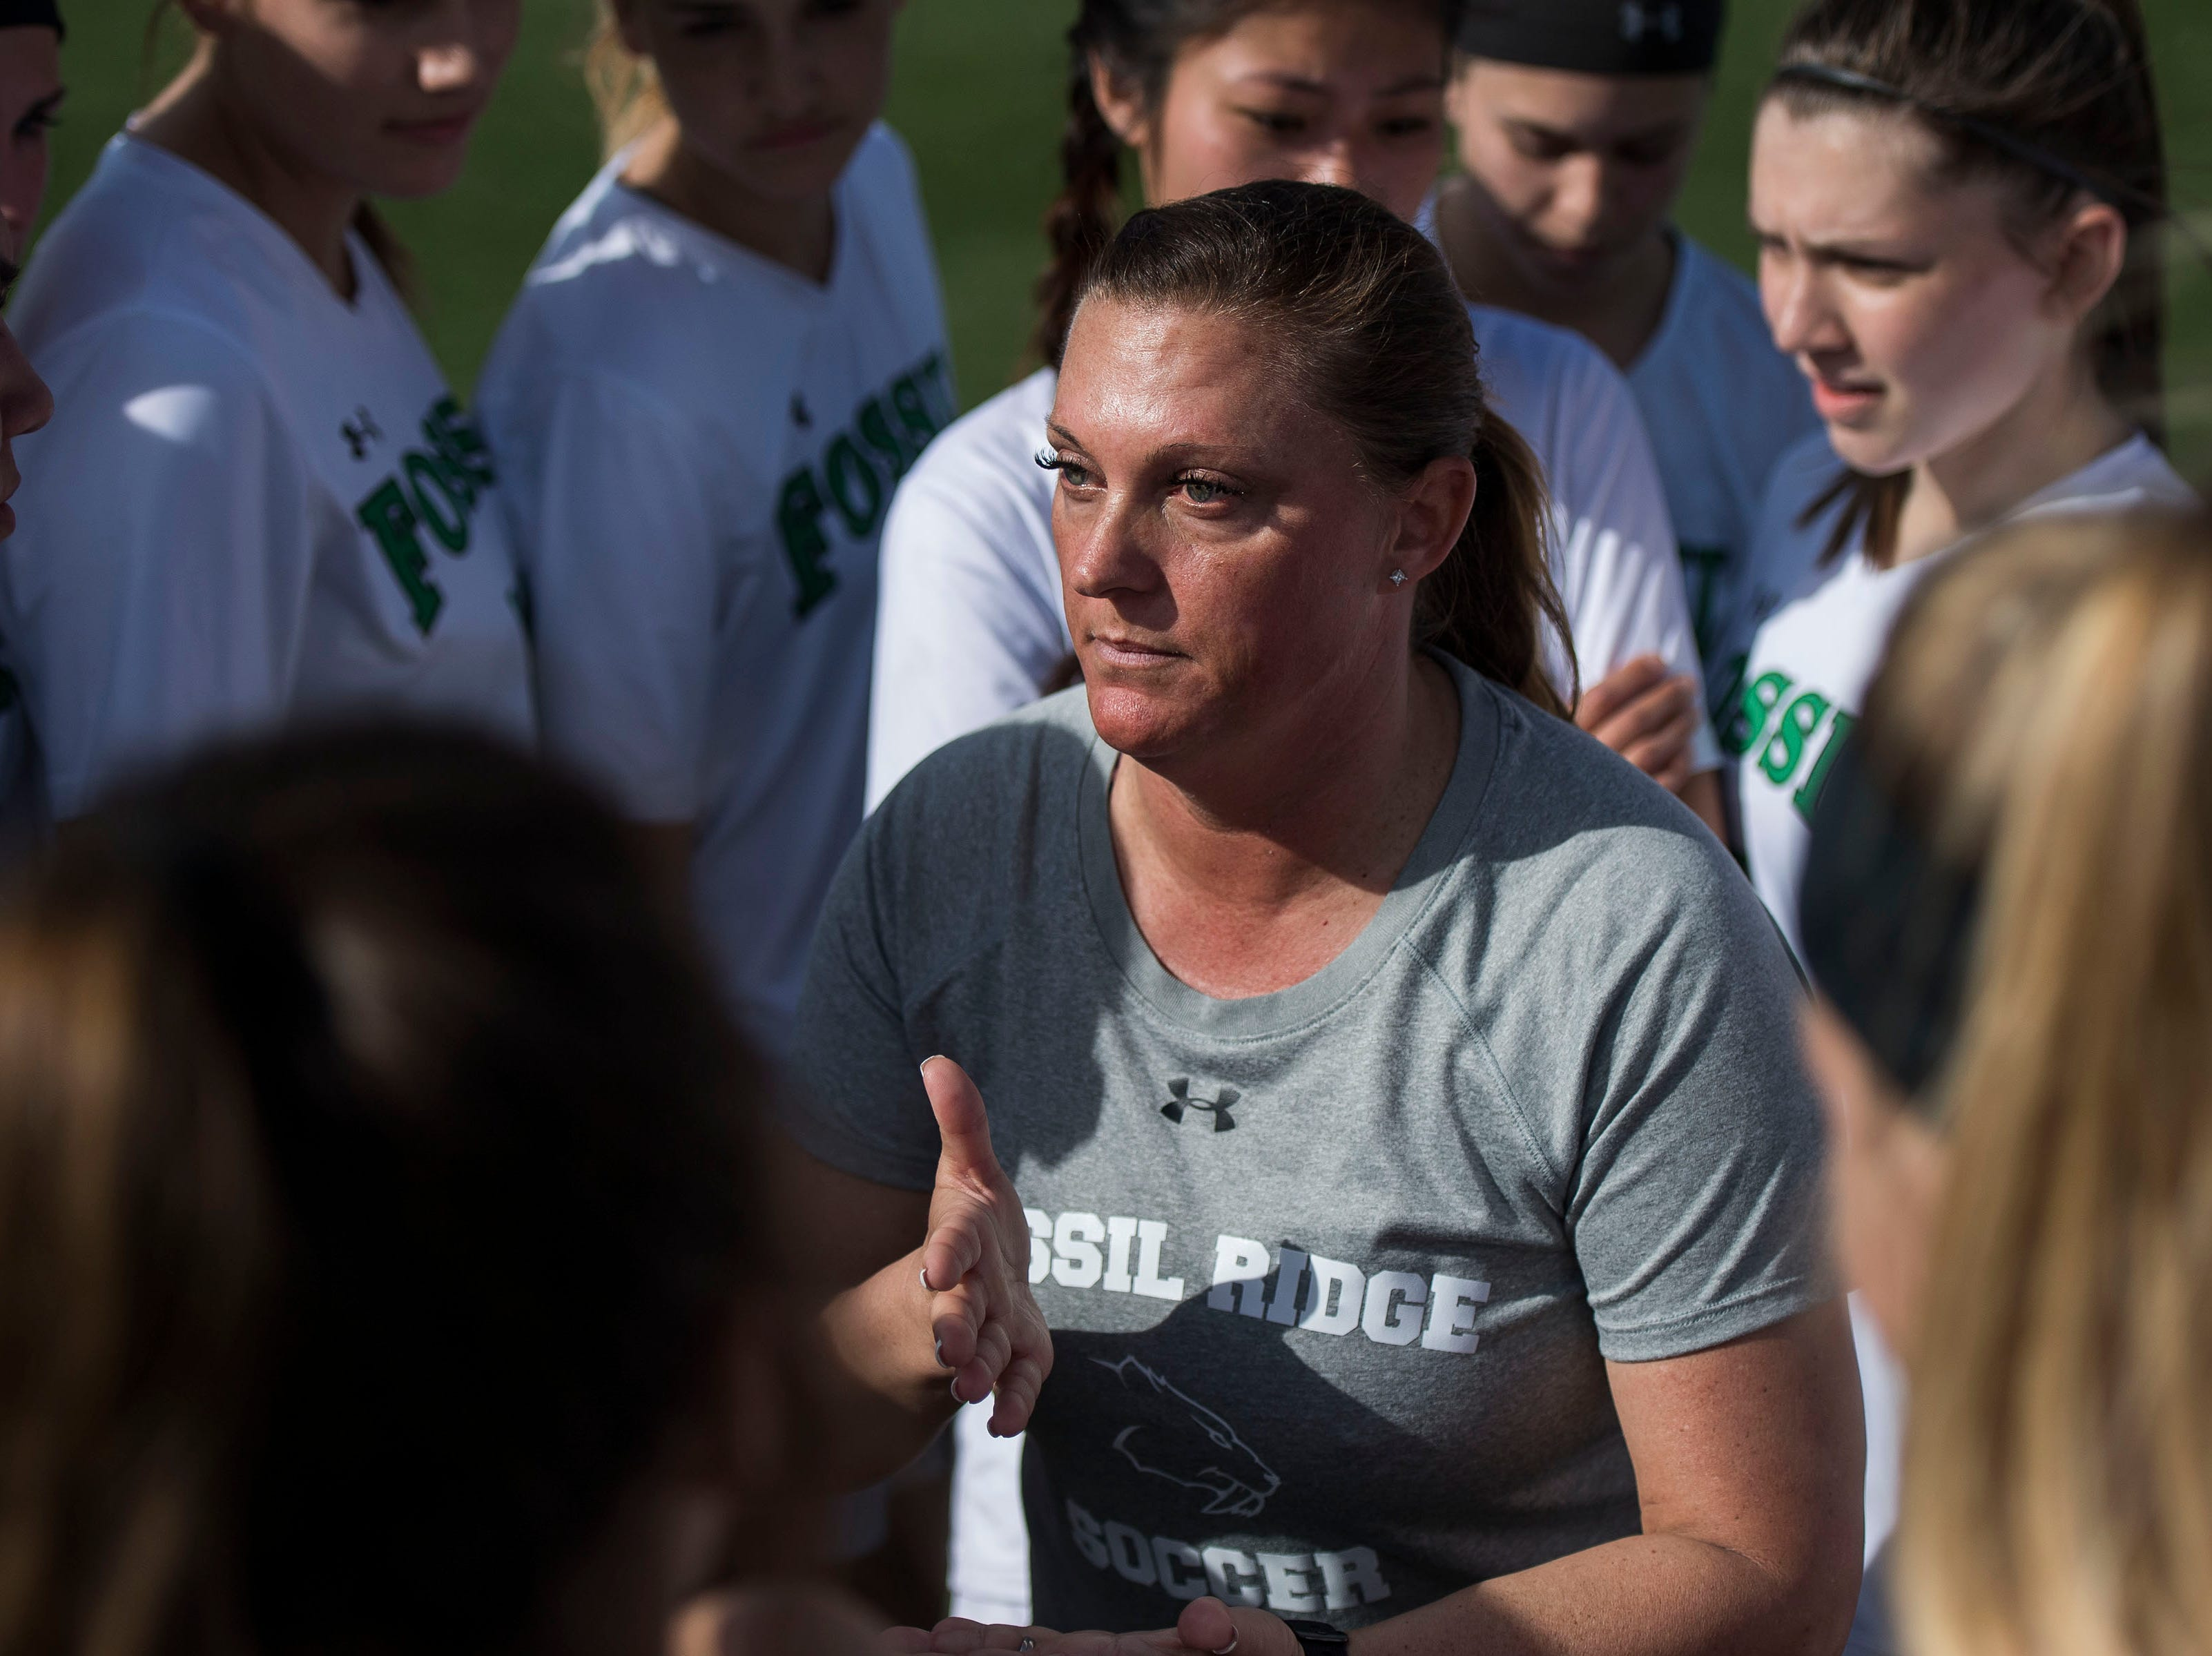 Fossil Ridge High School head coach Kim Whisenant huddles up wit tithe team before a game against Rocky Mountain High School on Friday, April 4, 2019, at Colorado State University's soccer field in Fort Collins, Colo.